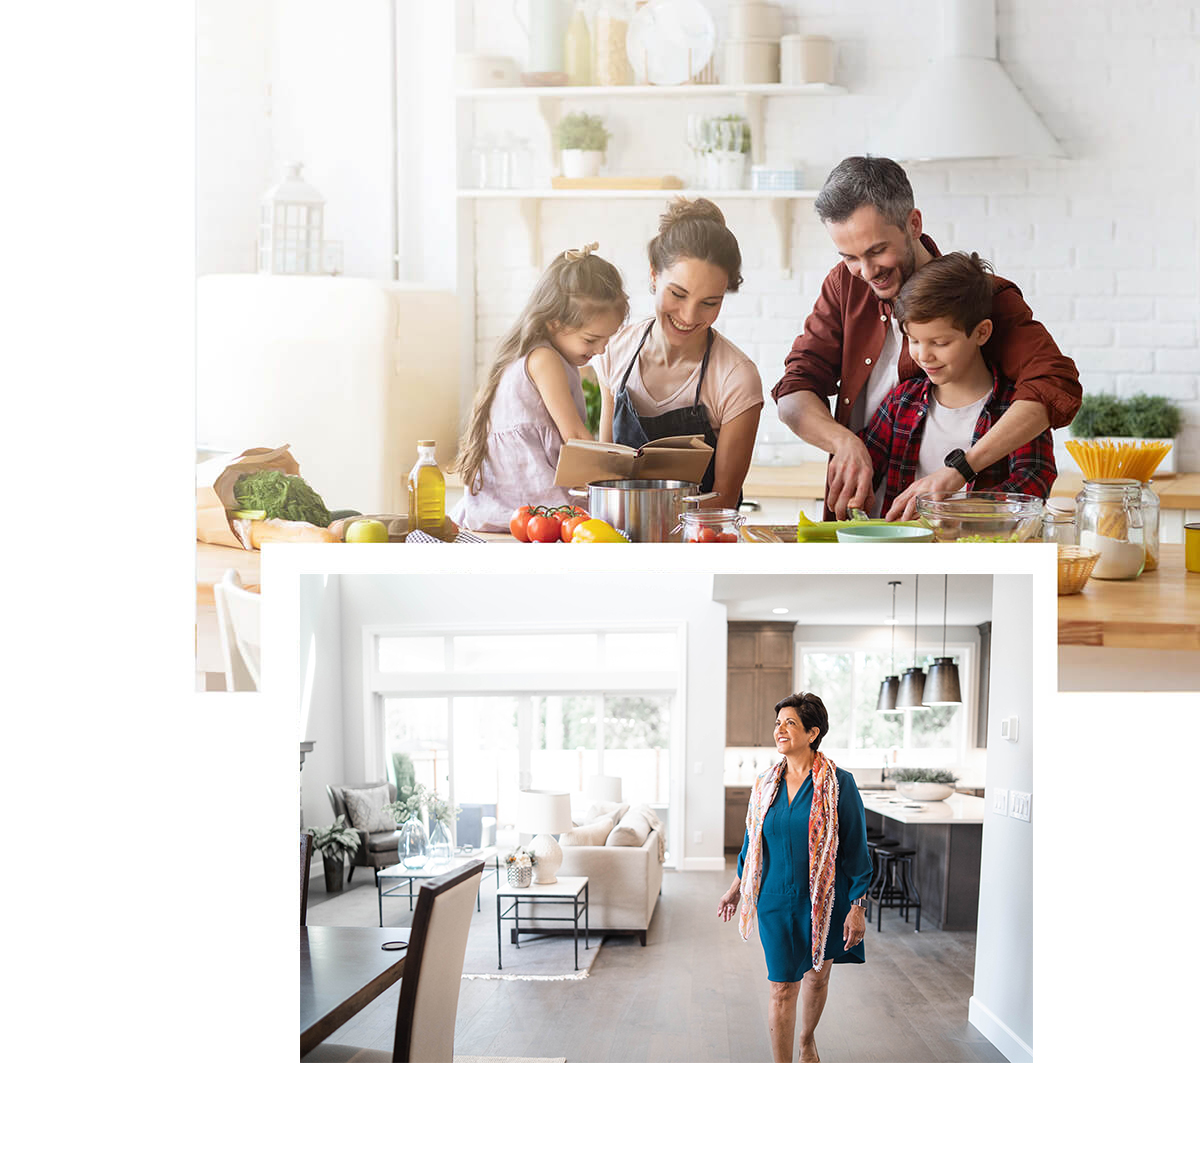 Our Difference - Family in Kitchen, Fireplace Image